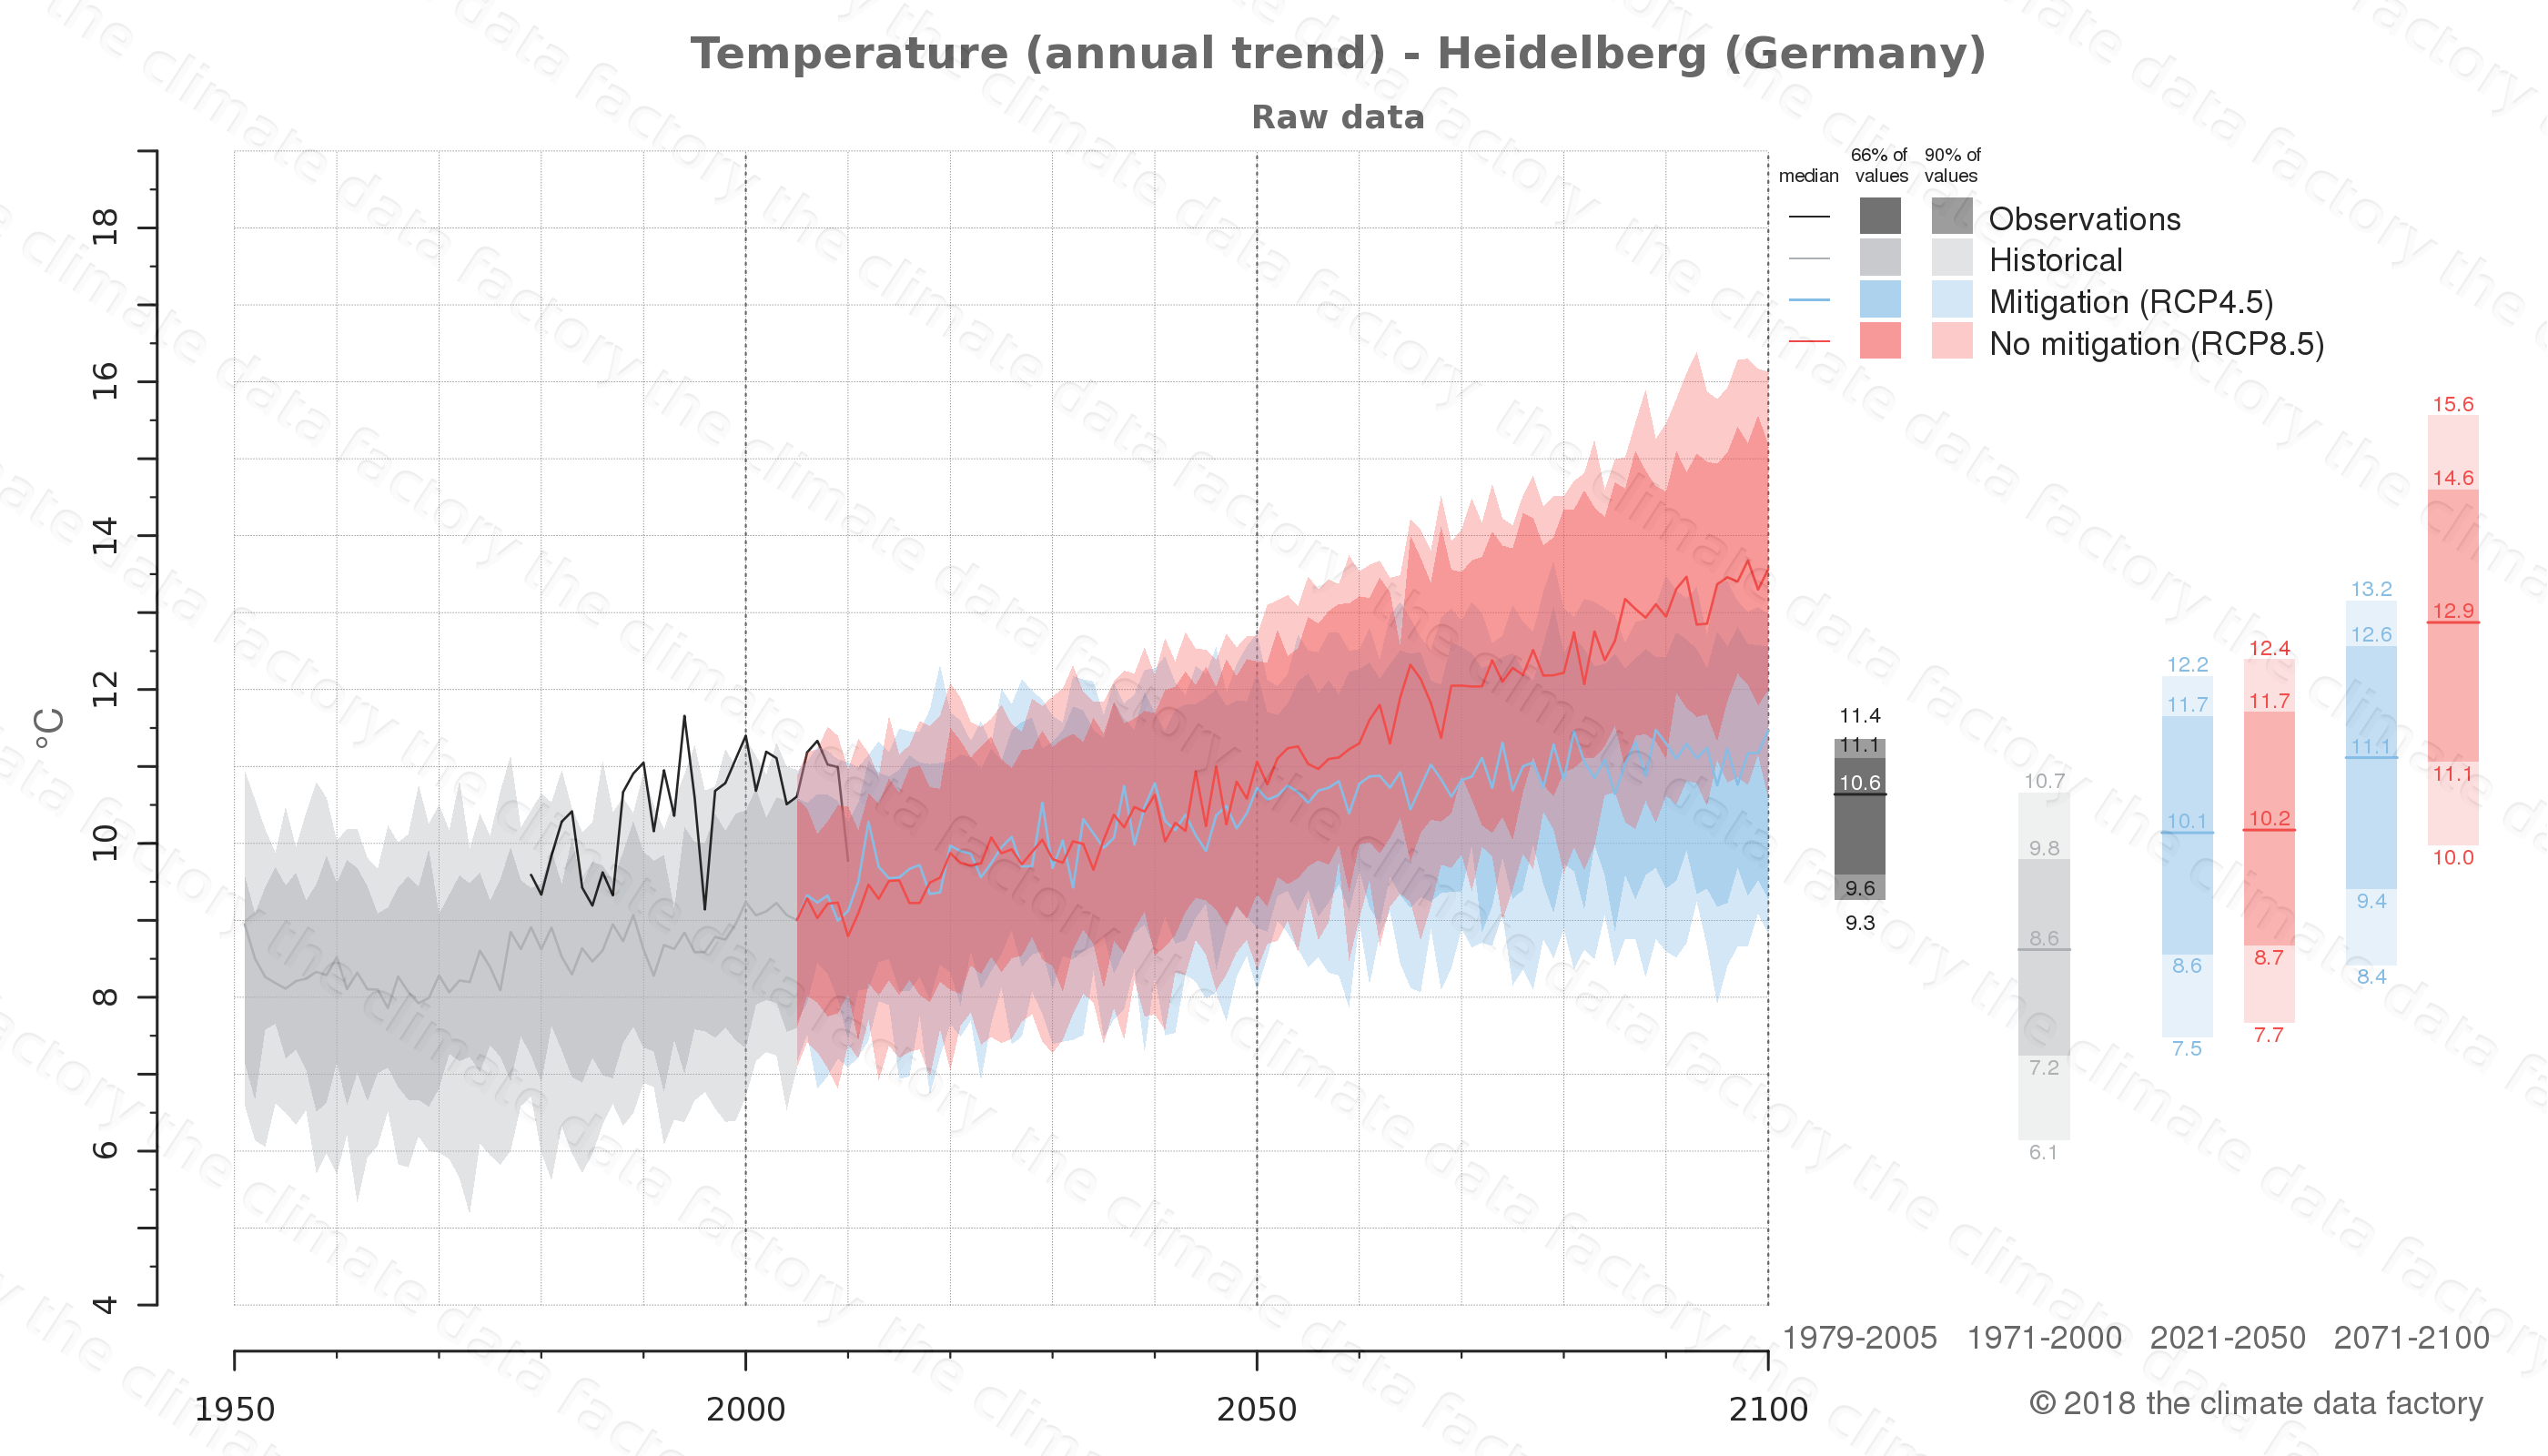 climate change data policy adaptation climate graph city data temperature heidelberg germany